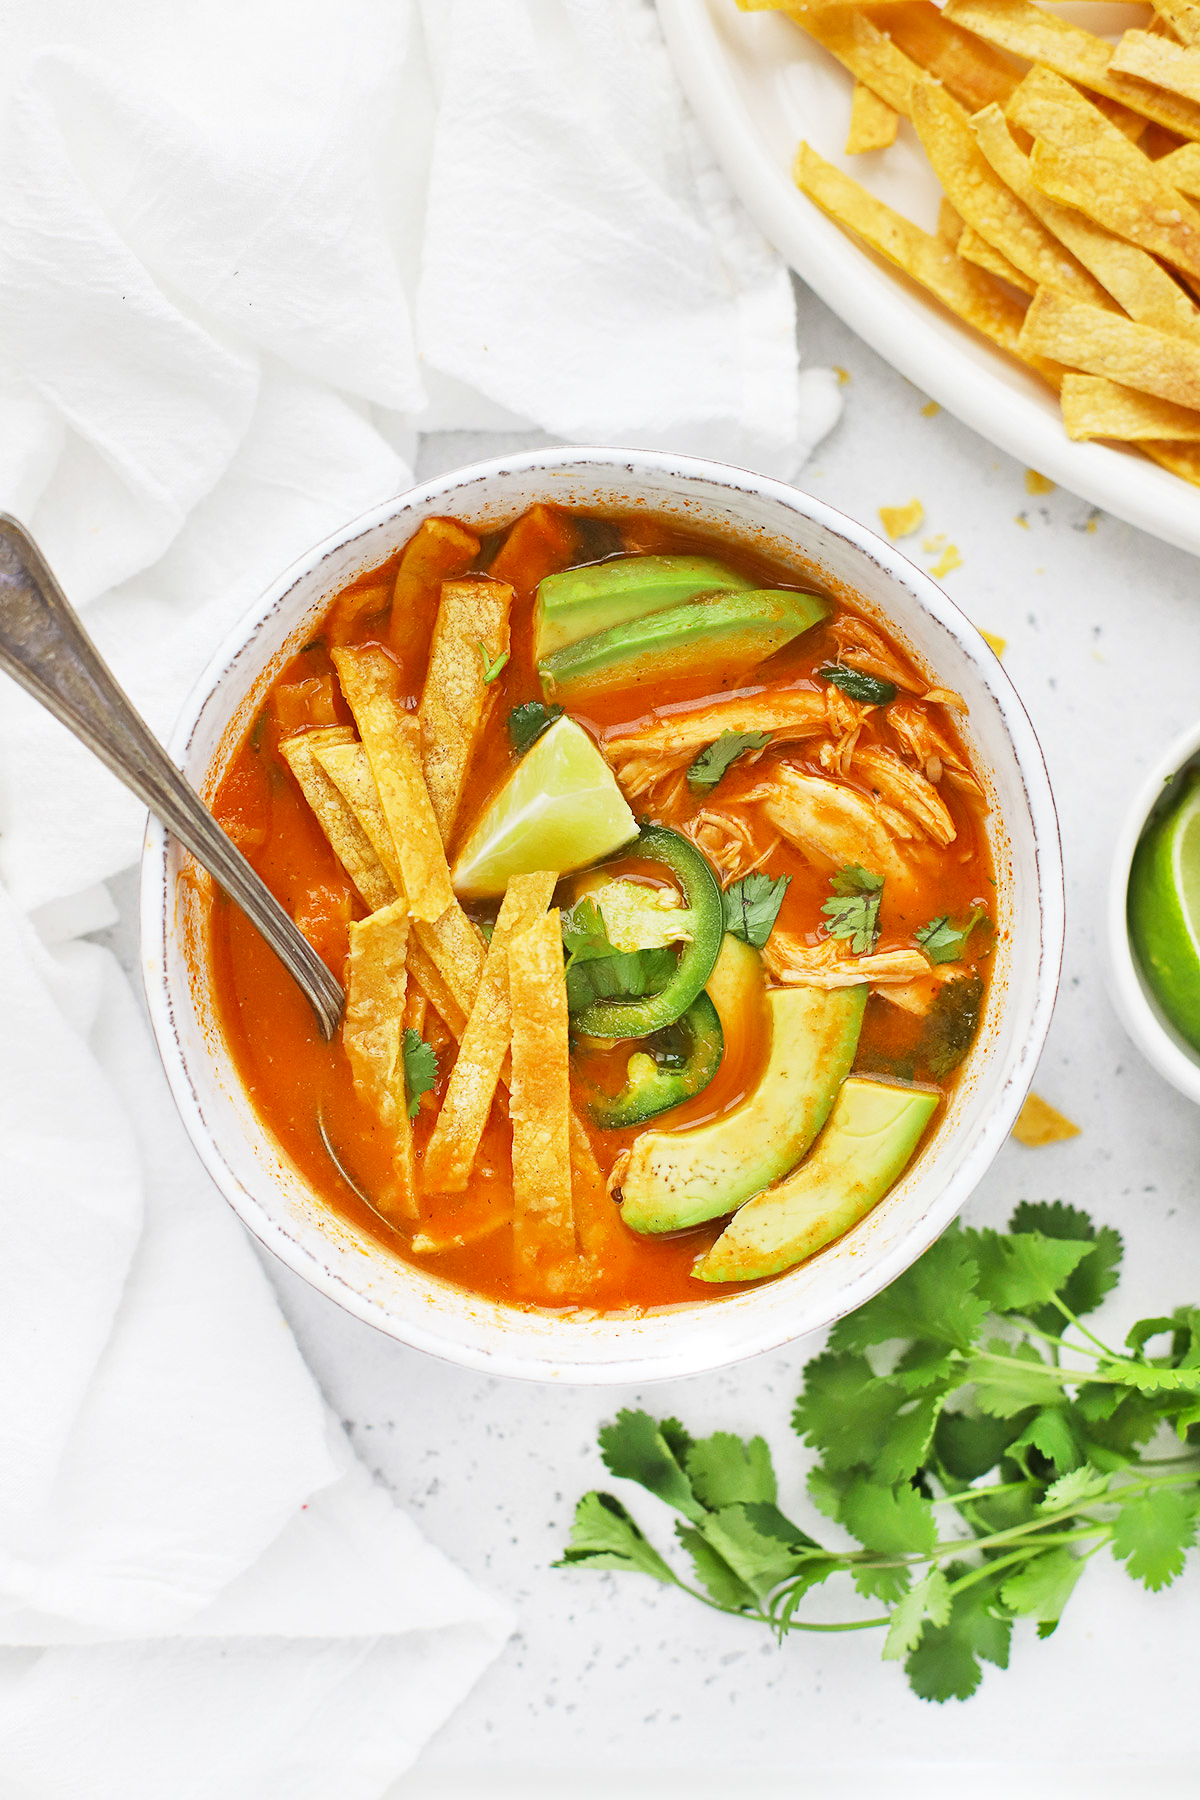 Overhead view of a white stoneware bowl of chicken tortilla soup topped with sliced avocado and crispy baked tortilla strips.